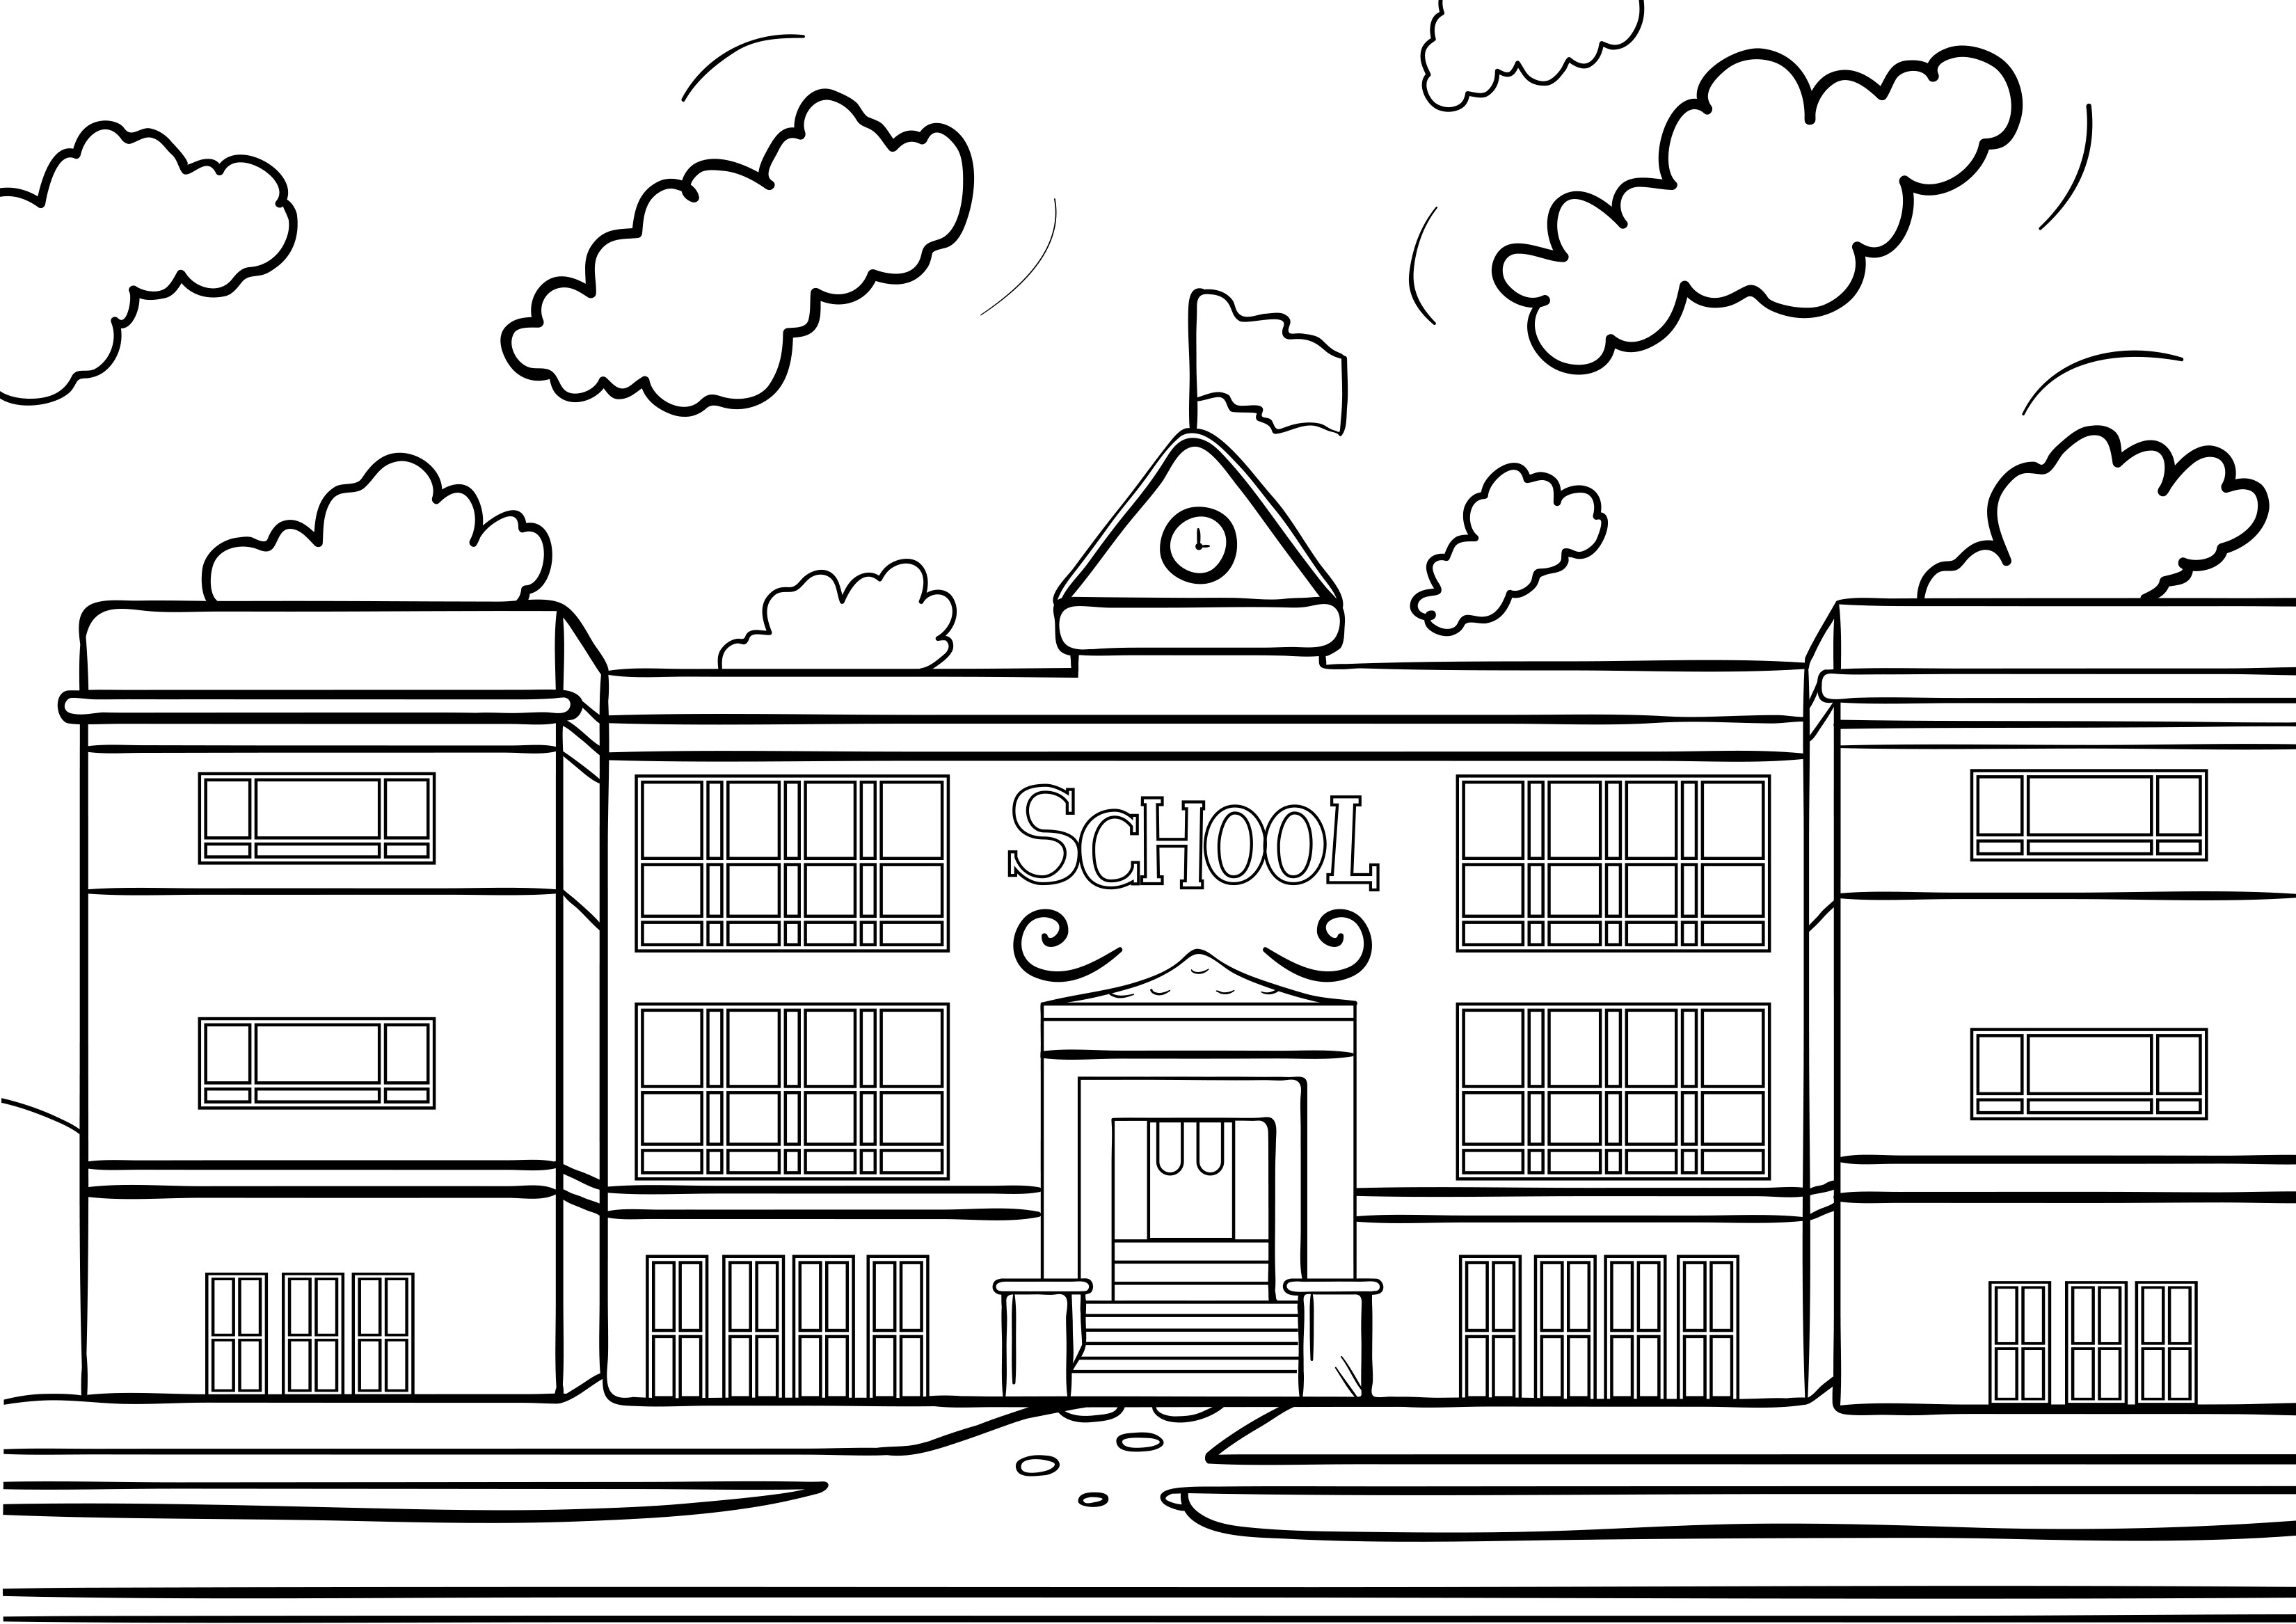 School House Coloring Pages to Print Of School House Coloring Pages to Print